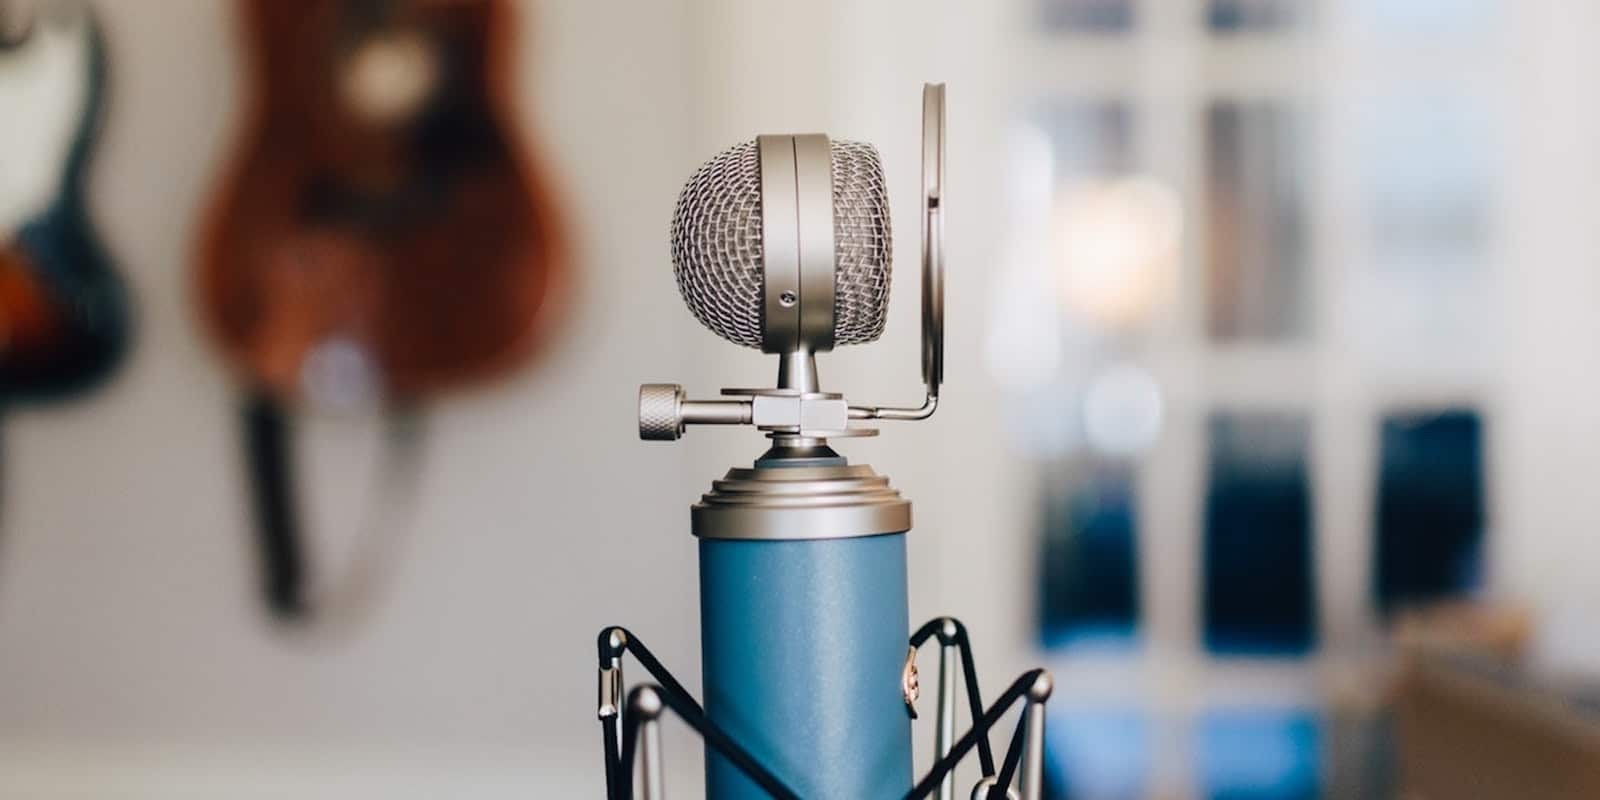 Learn the equipment and skills it takes to create compelling podcast content.